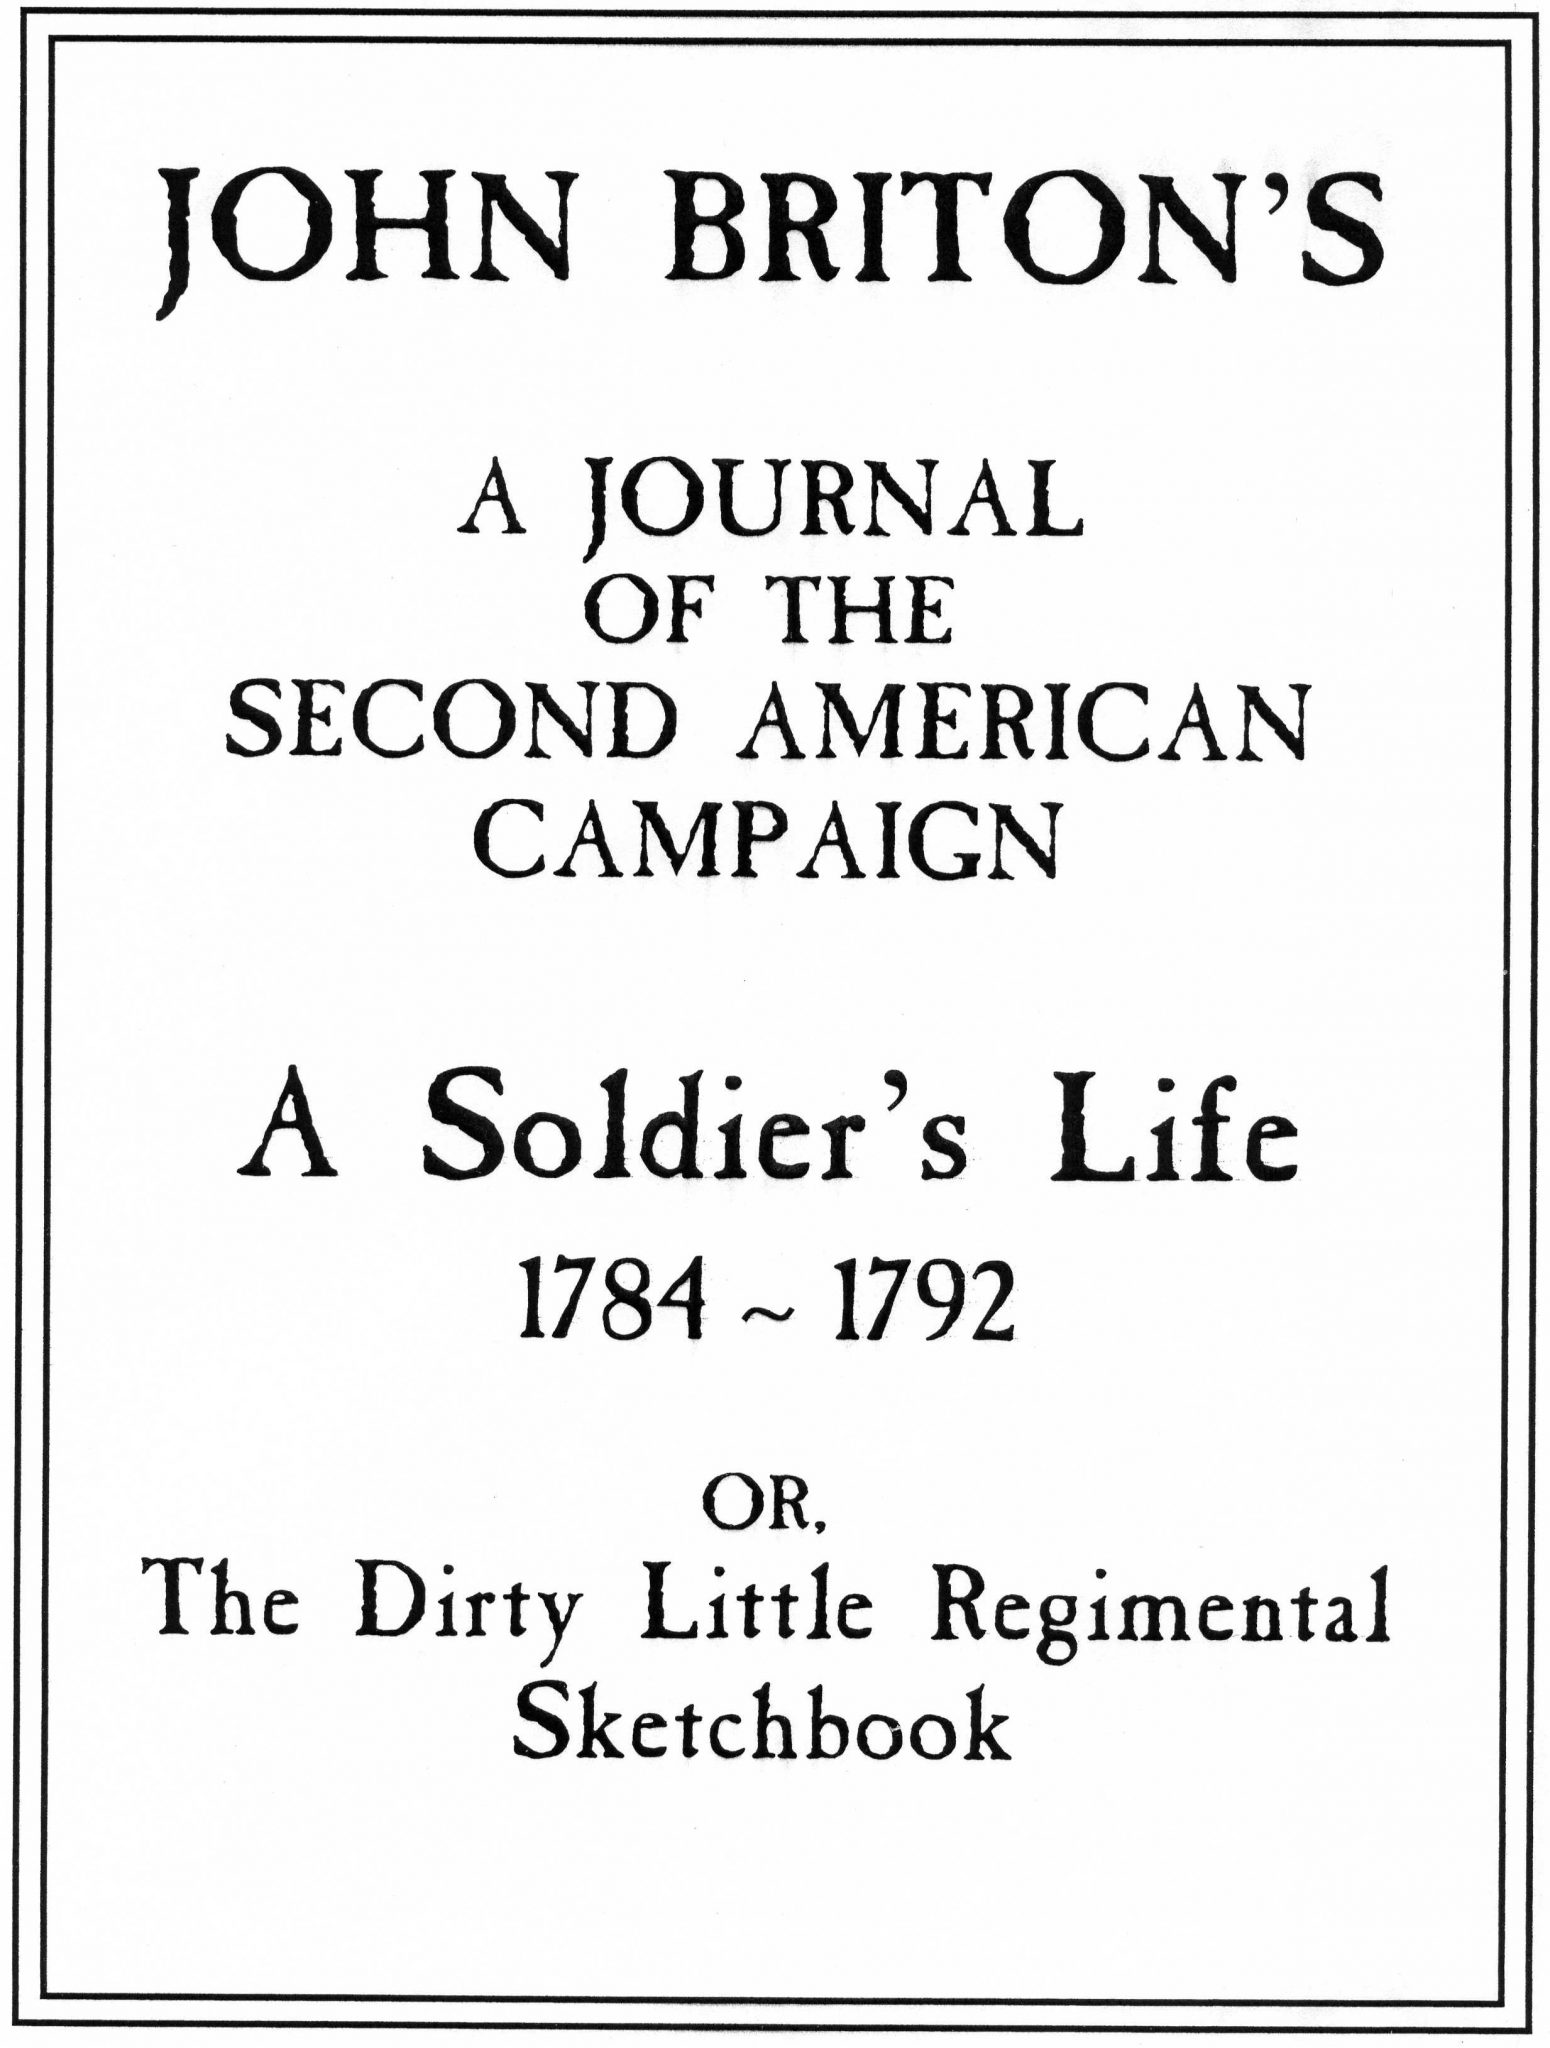 John Briton's, A Journal of the Second American Campaign, or, the Dirty Little Regimental Sketchbook, by John Wright